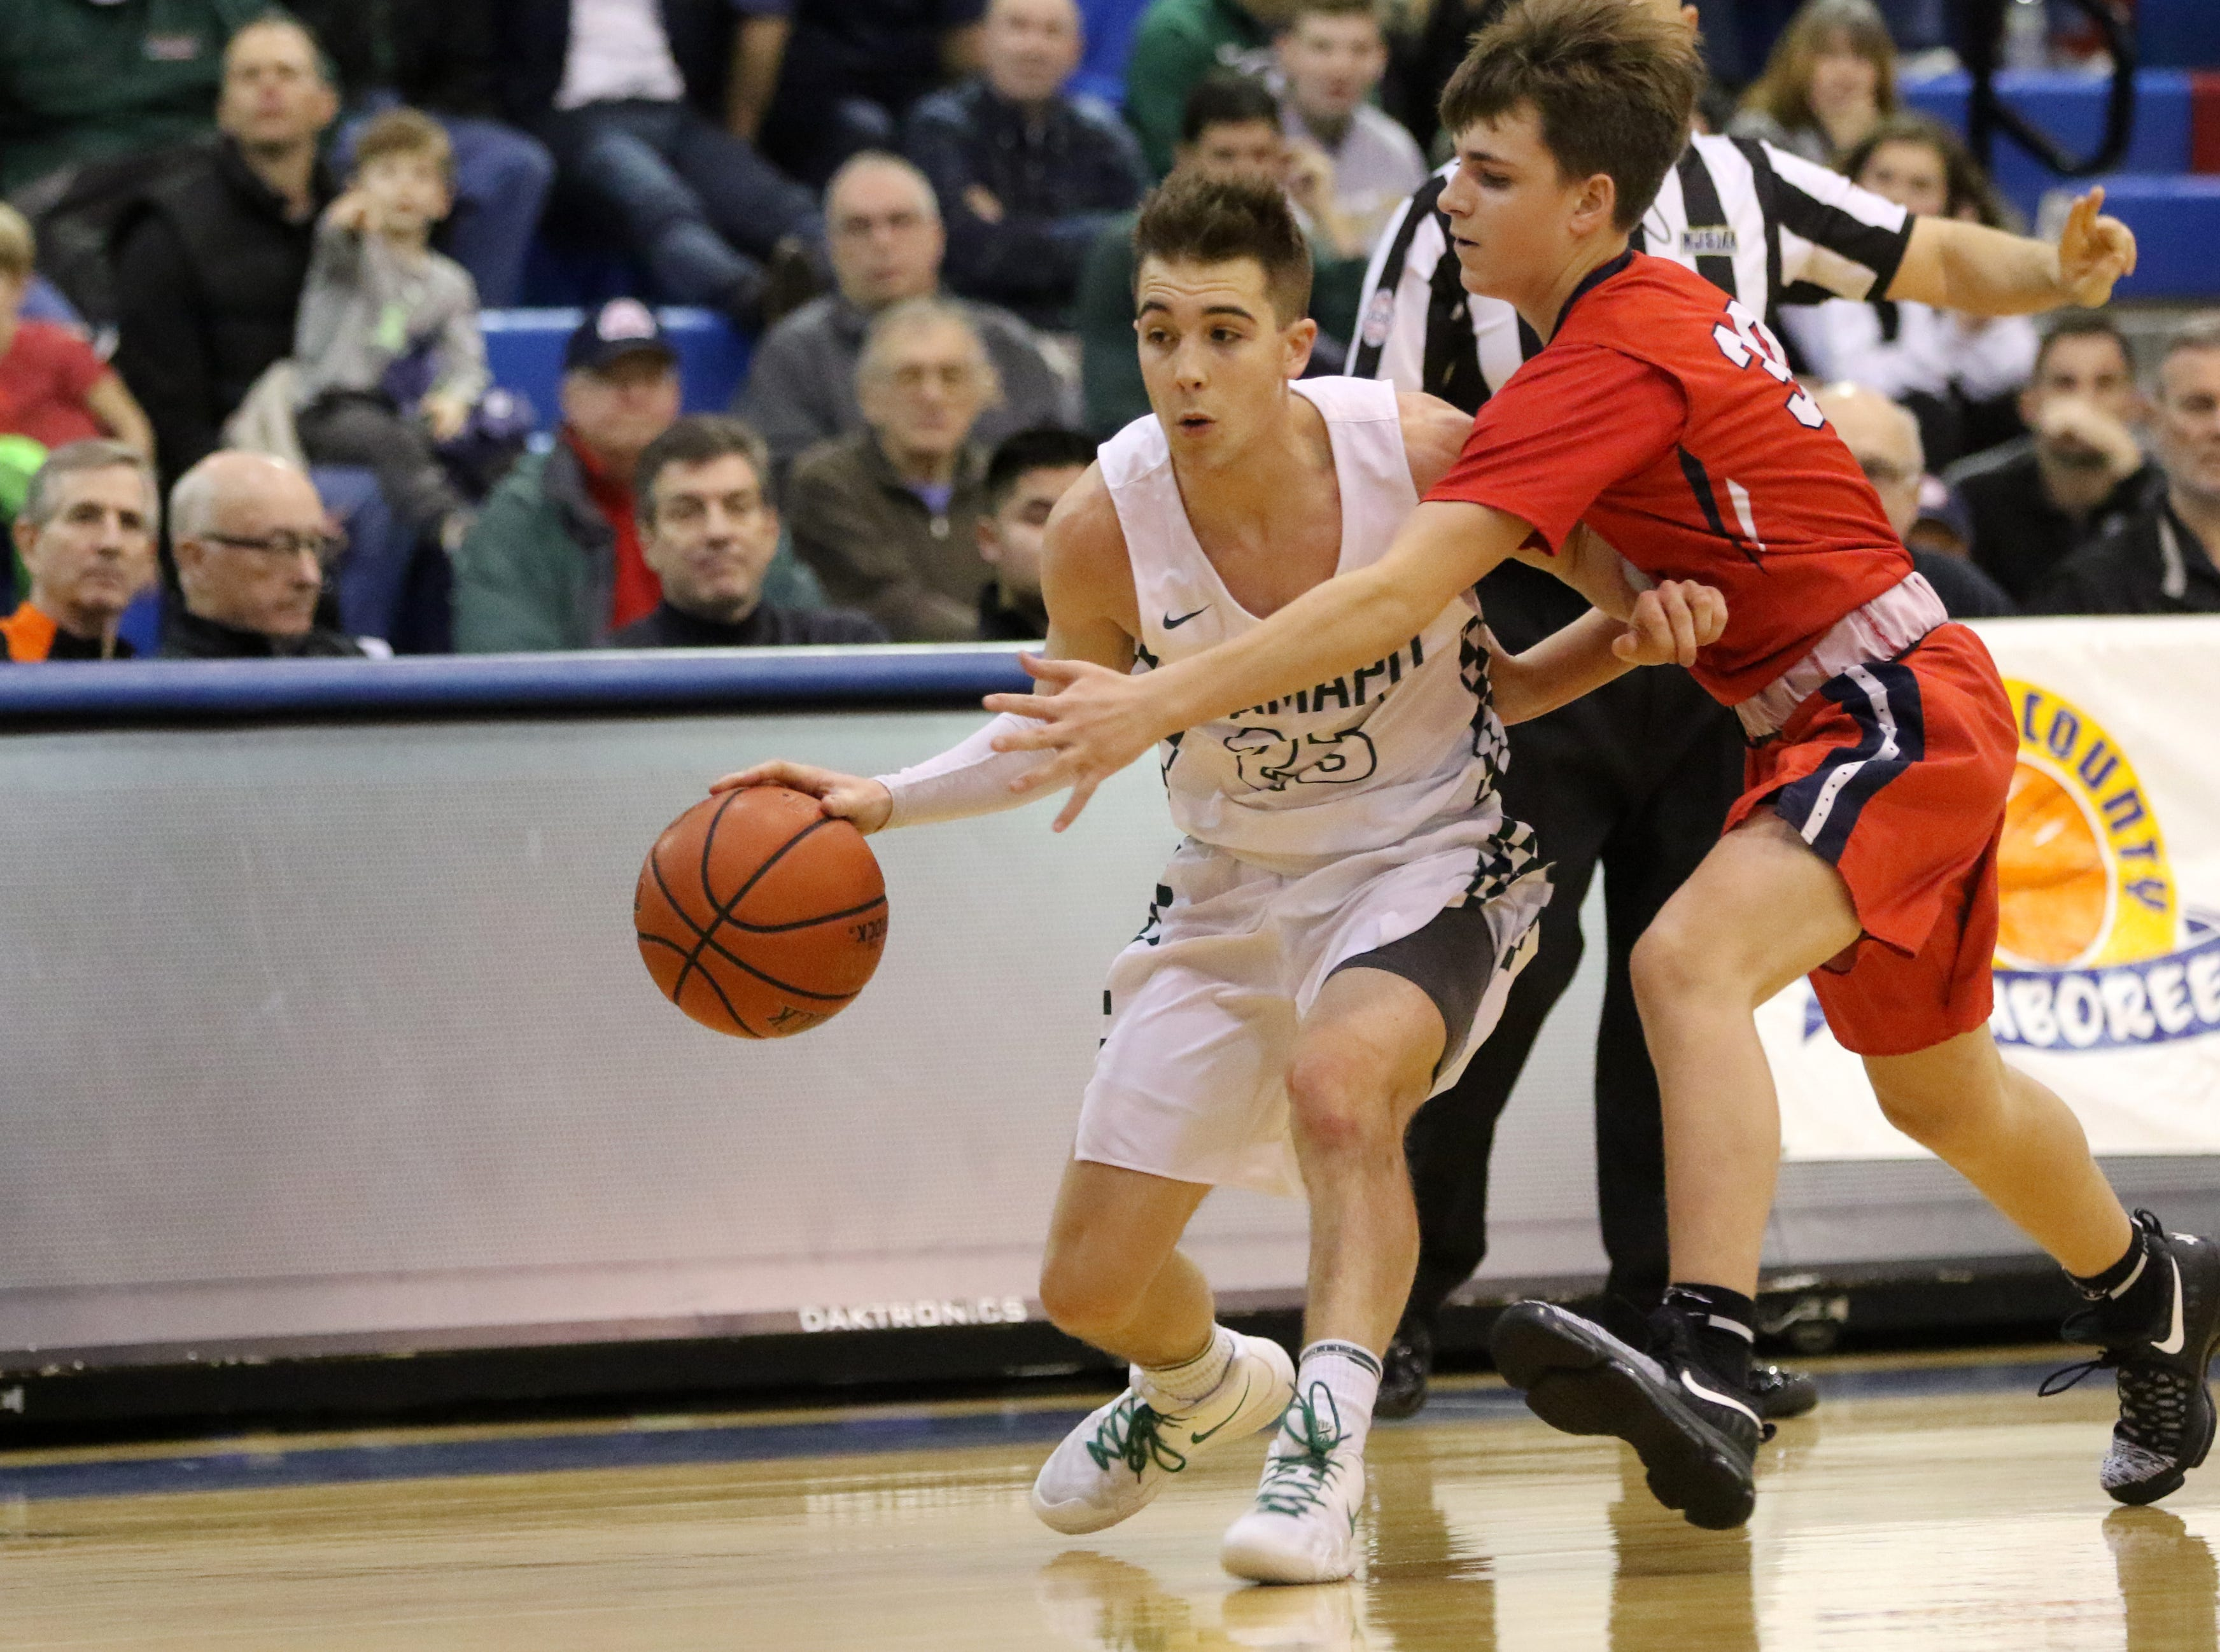 Kyle Hroncich, of Ramapo, tries to keep the ball away from Ryan Cassels, of Saddle River Day.  The Raiders won the Bergen County Jamboree game, 78-60. Sunday, February 10, 2019